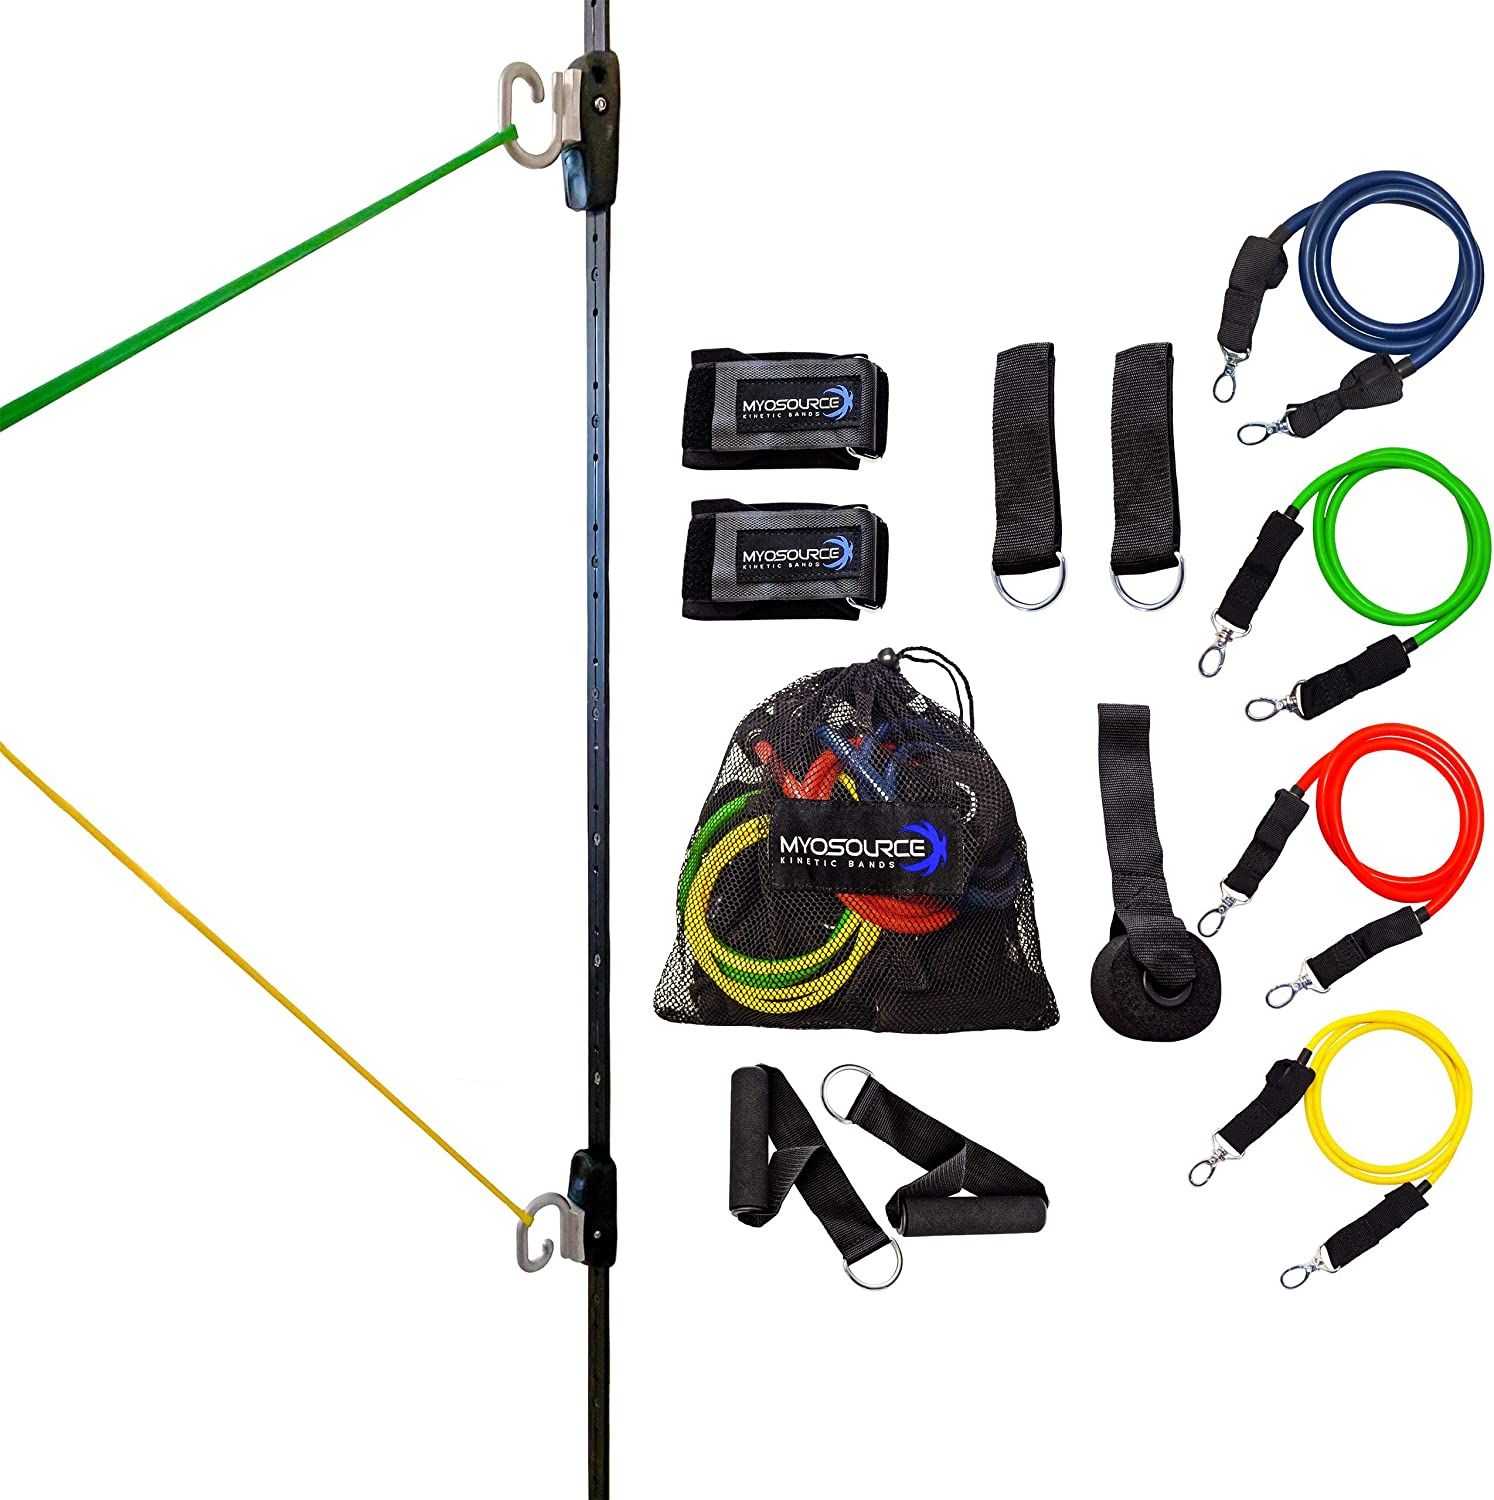 Space Saver Gym Resistance Bands Exercise Equipment for Home | Resistance Band Wall Anchor with 2 Rails and 2 Rail Cars